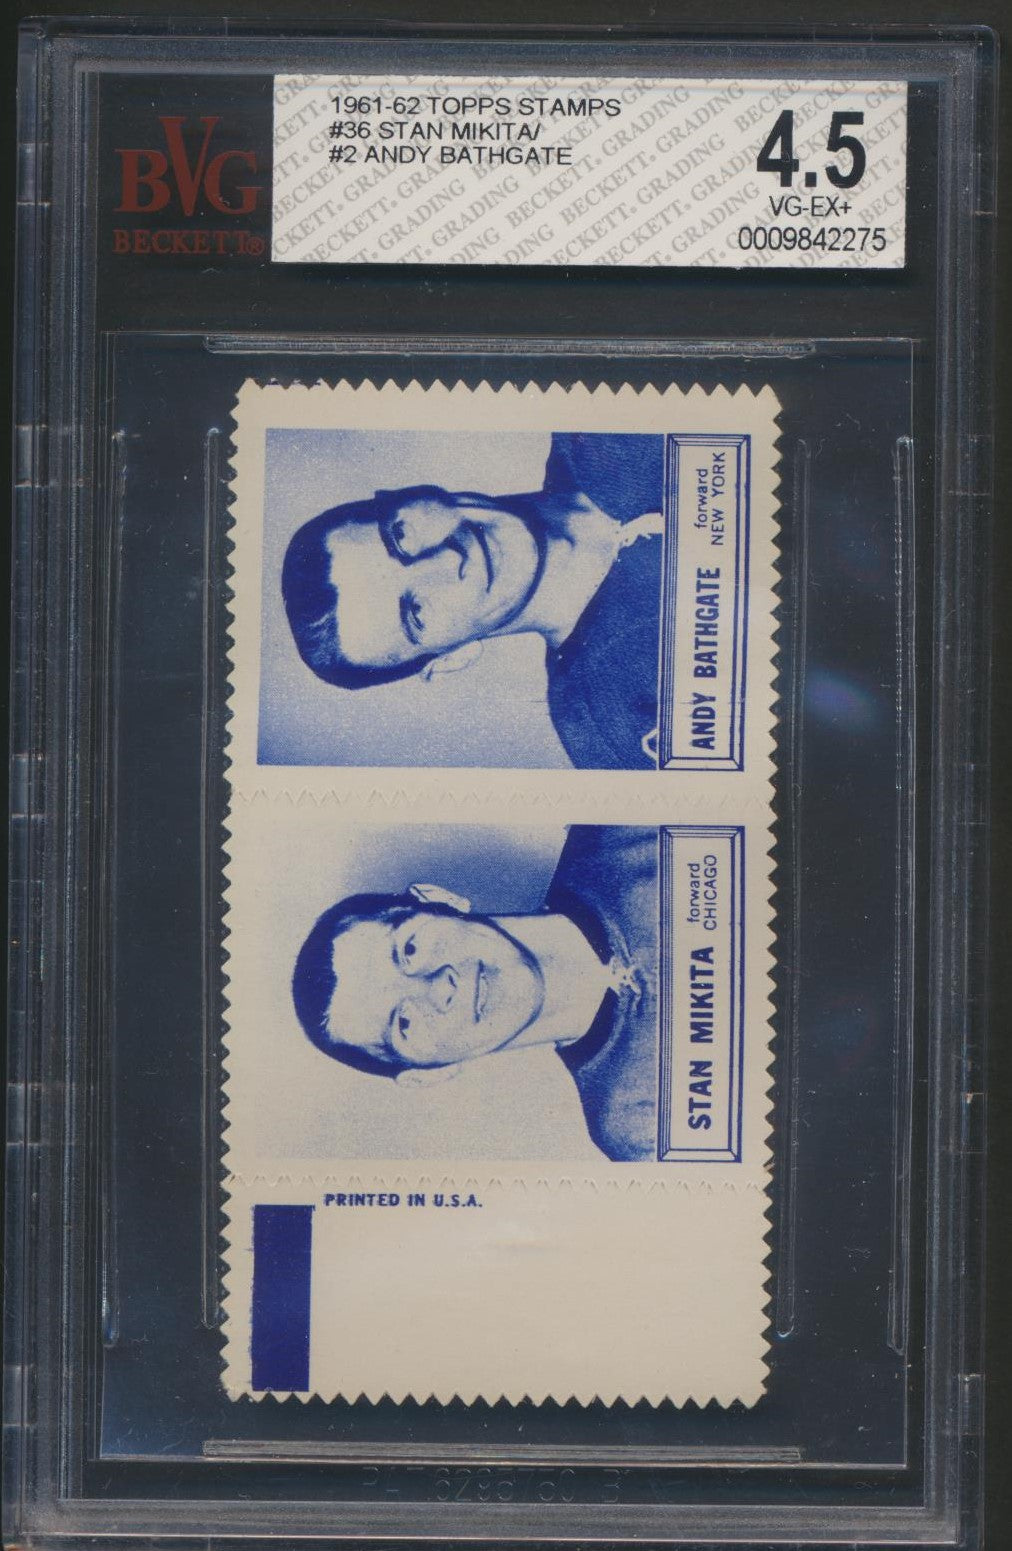 Rare Graded 1961-62 Topps Hockey Inserts Stamp Pairs  Mikita/ Bathgate Panel